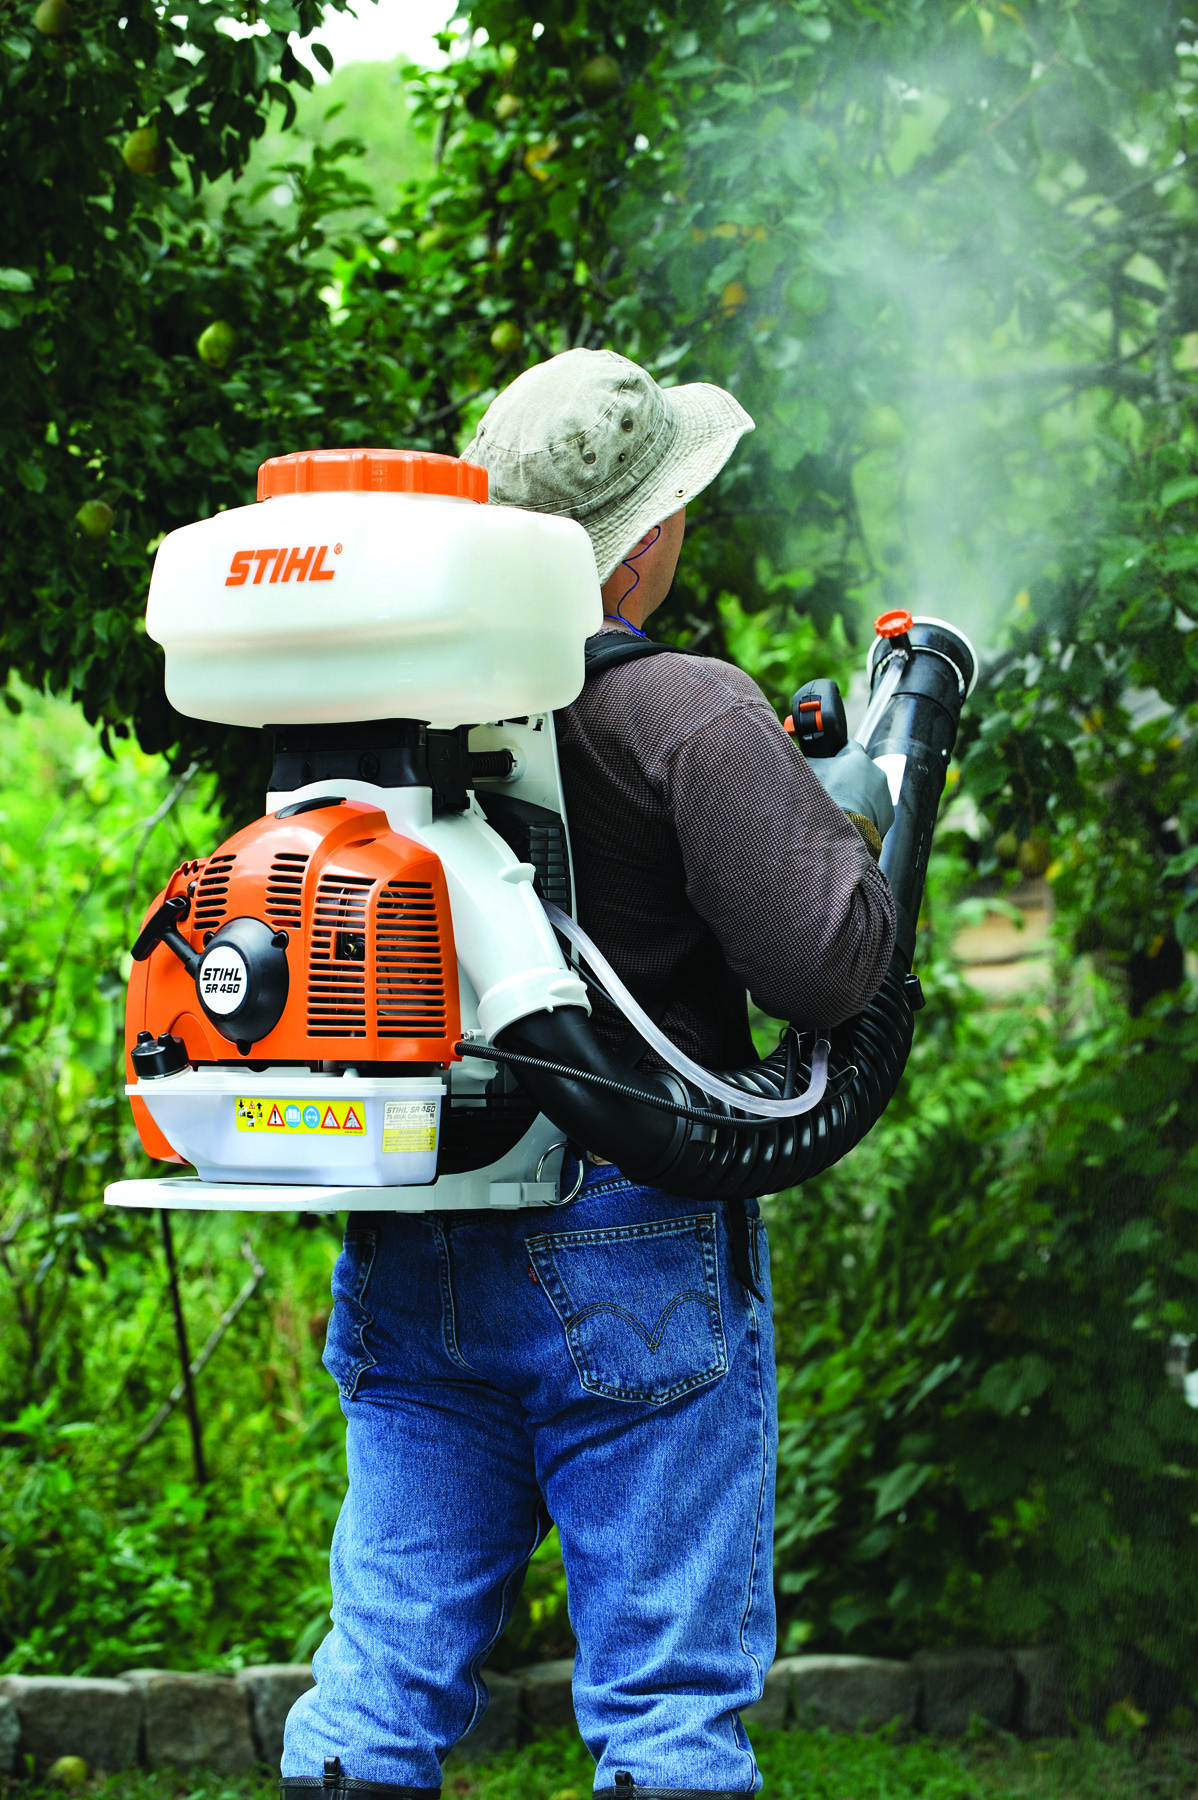 Stihl Sr 450 http://www.sharpeslawn.com/our-products/stihl/stihl-back-pack-blowers-sprayers/stihl-sr-450-backpack-blower-sprayer-duster/